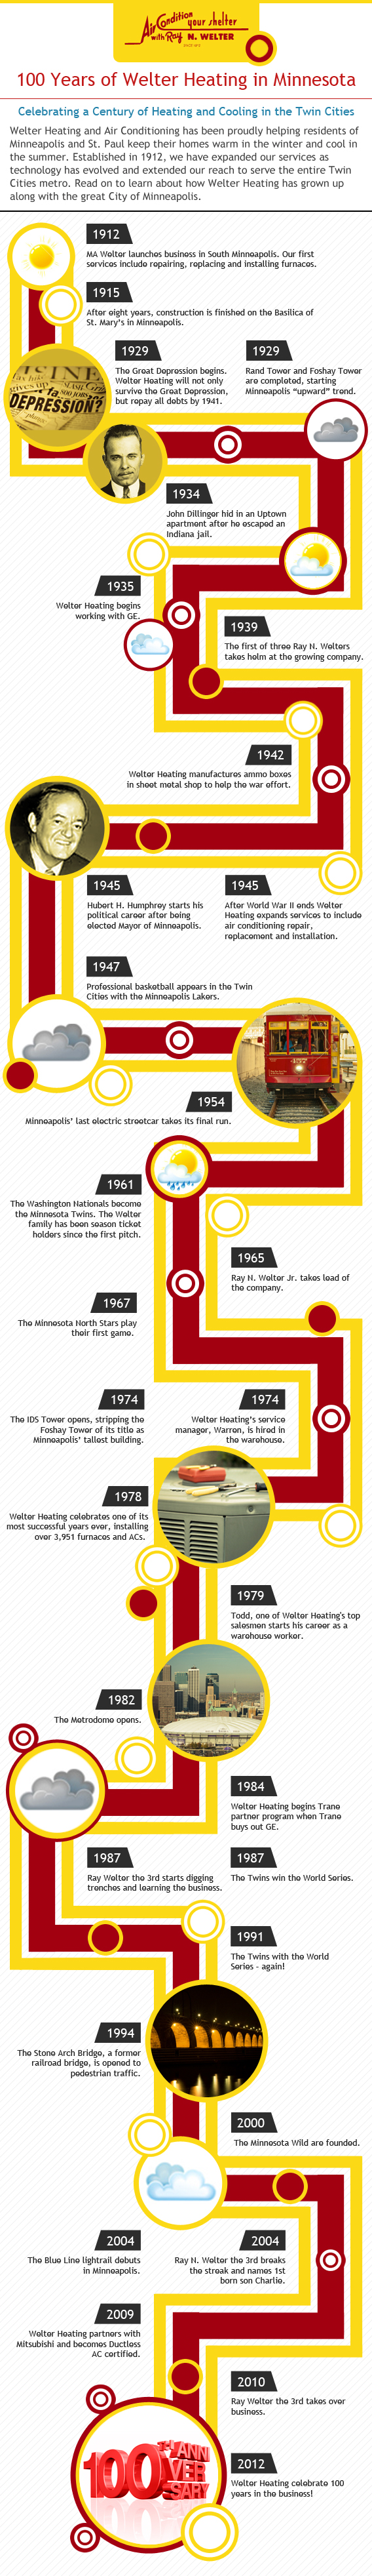 See great timeline of Twin Cities and Welter Heating